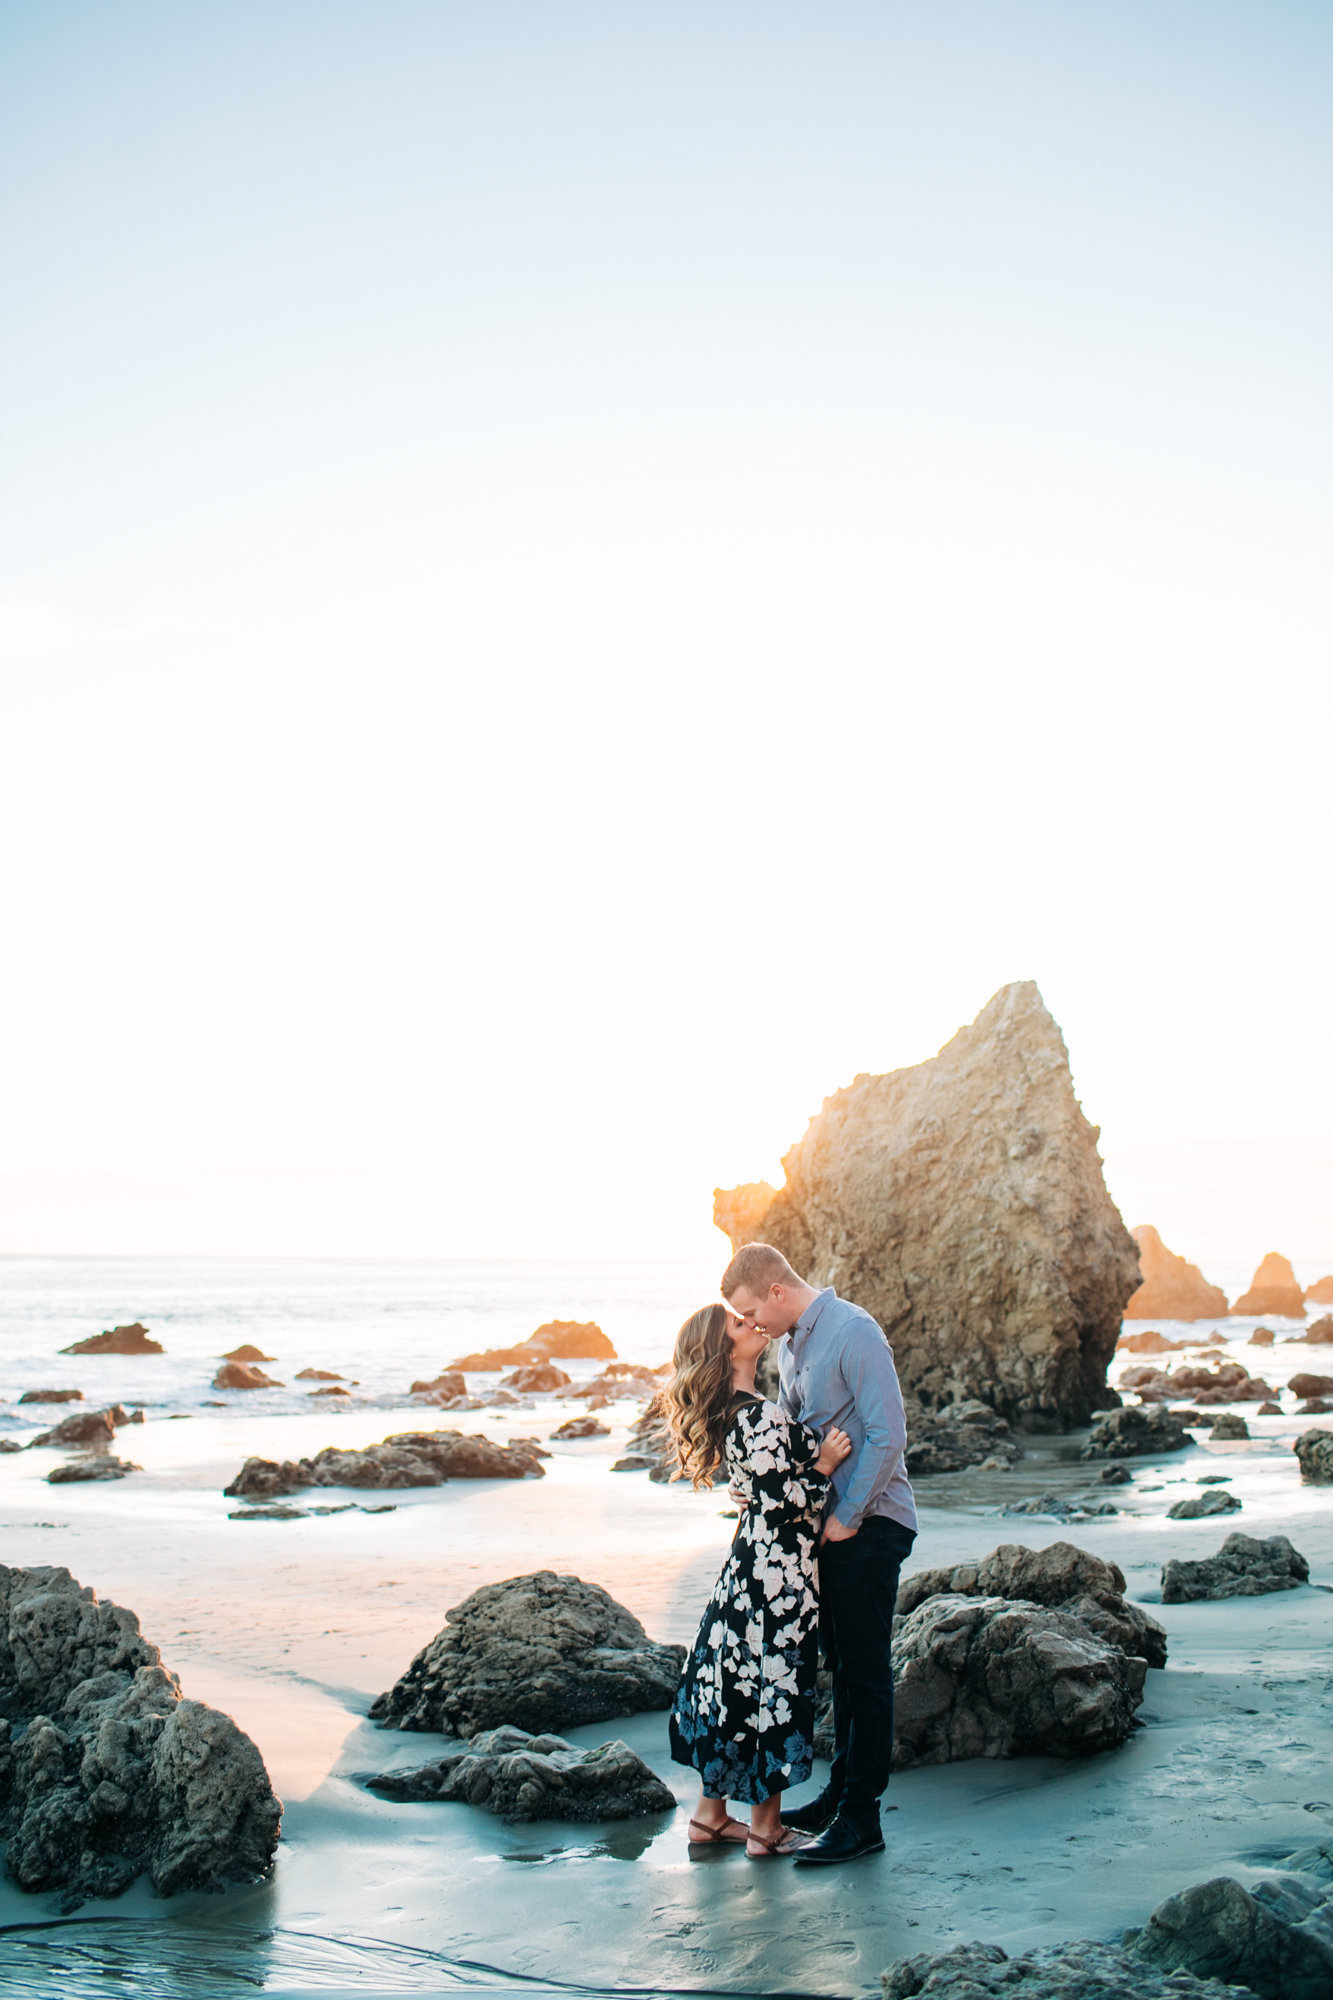 Malibu_Engagement_Session_Lily_Ro_Photography-6452